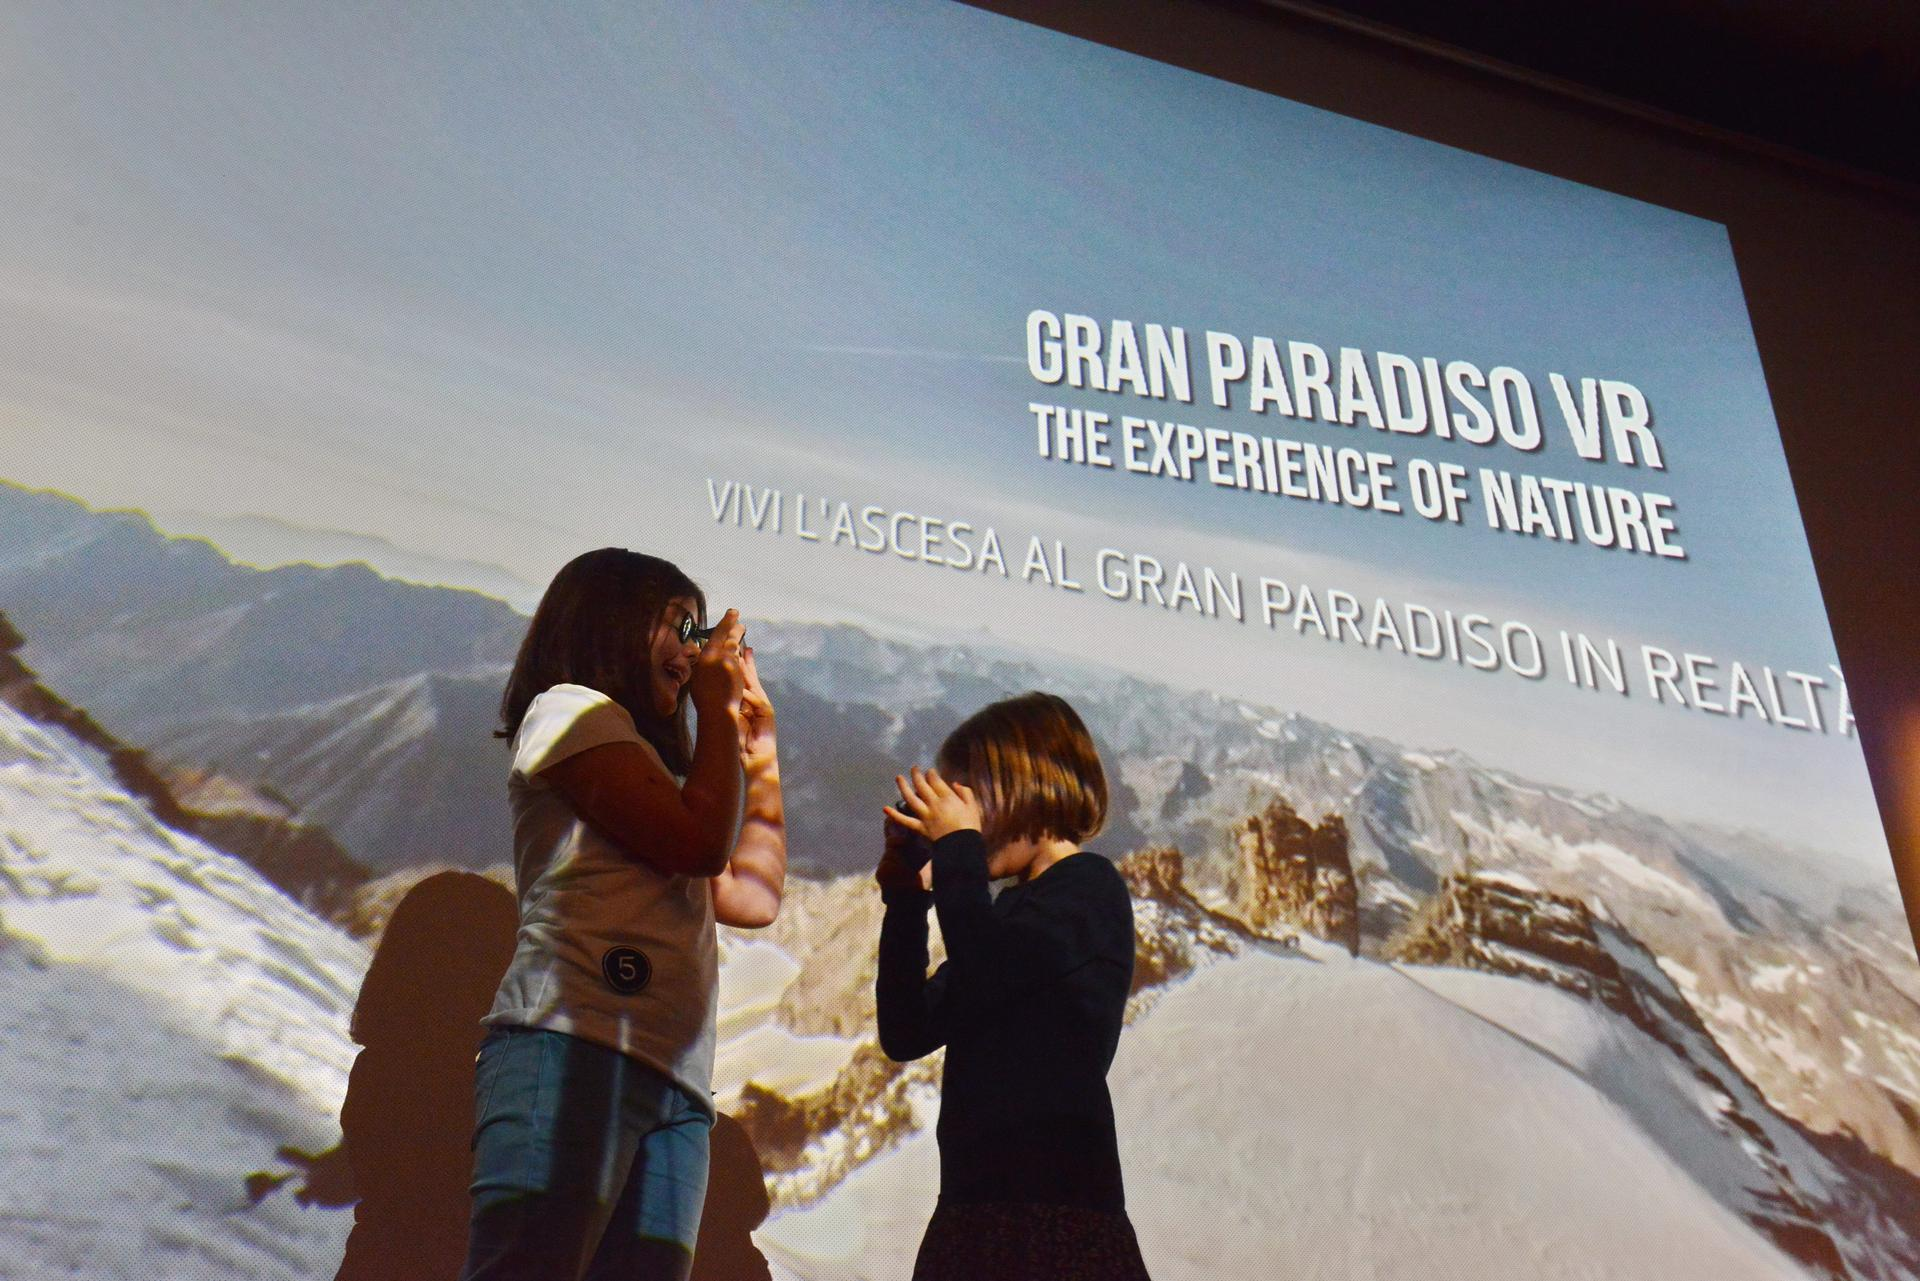 Gran Paradiso VR The Experience of Nature